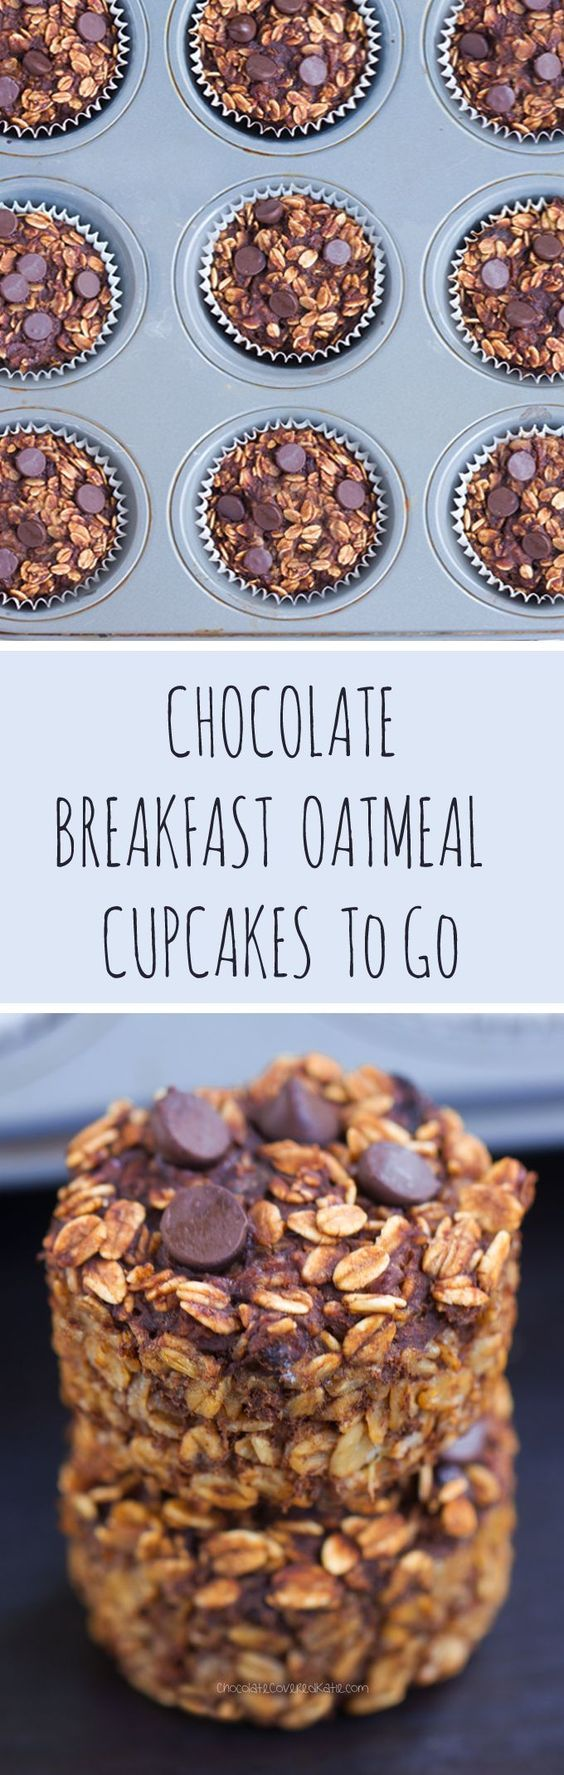 You cook just ONCE and get a delicious breakfast for the entire month - Easy & nutritious recipe loved by kids and adults: chocolatecoveredk... @Chocolate Covered Katie